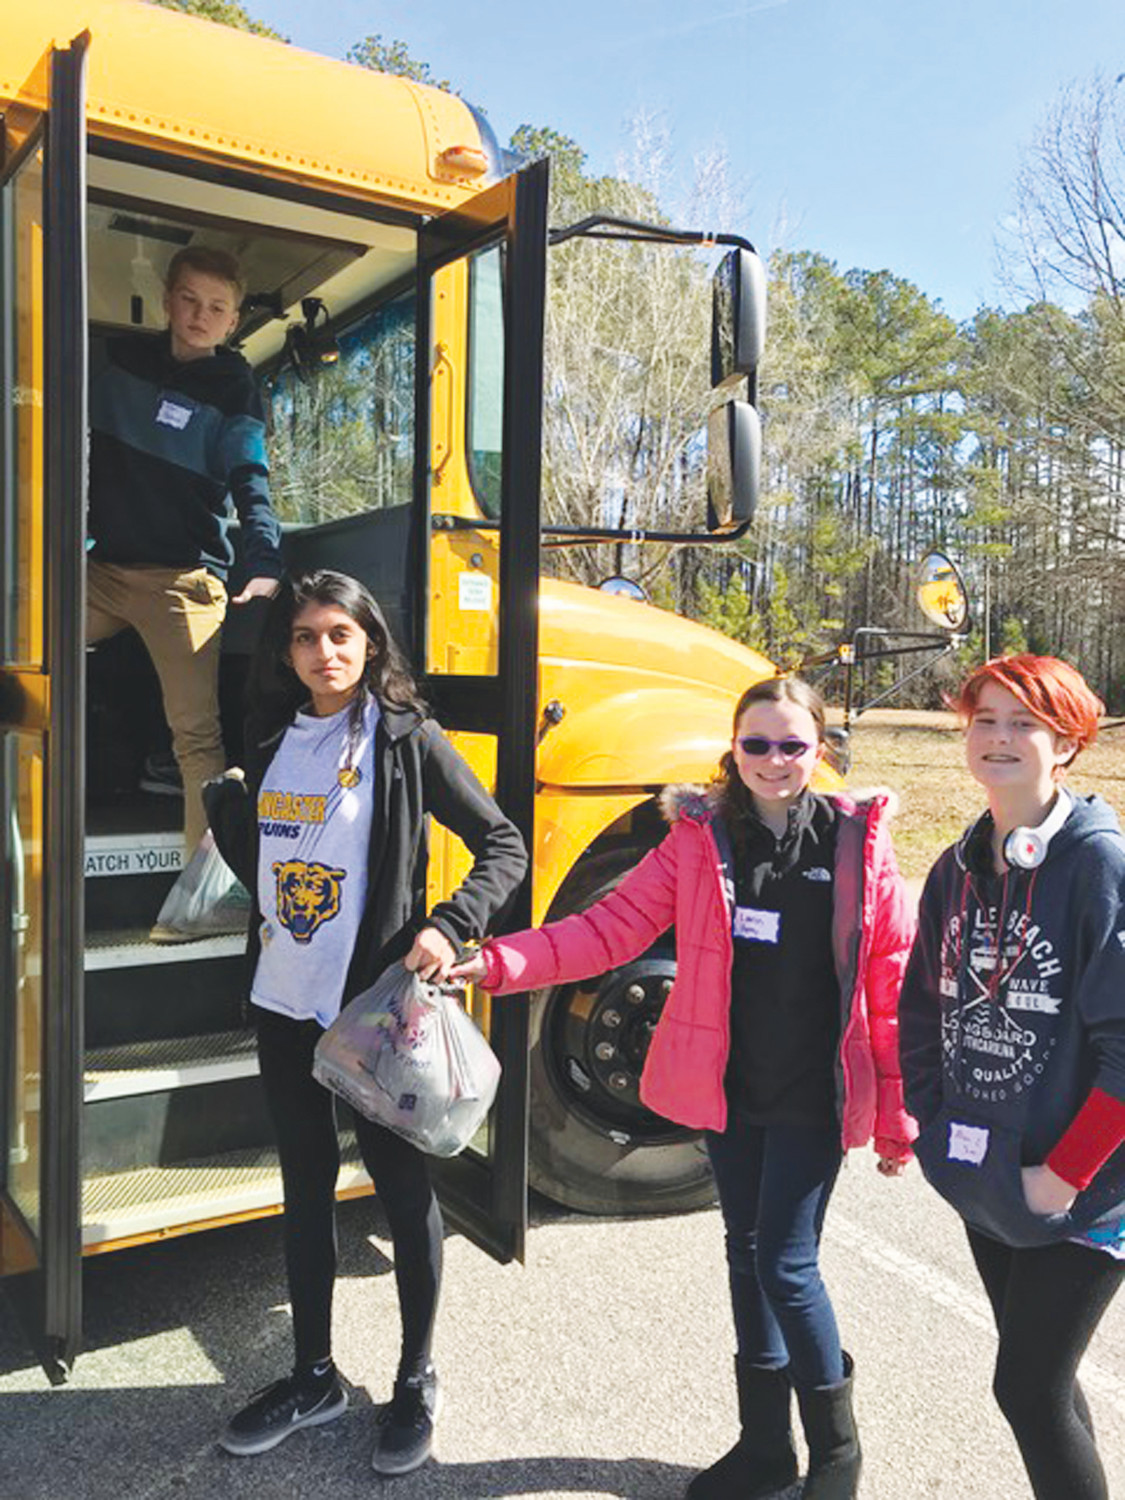 Sumter High, Crestwood High and Hillcrest Middle schools participated in the Jr. Civitan Winter Service Project at Saluda Shoals Park, Irmo, recently. Items were donated to Oliver Gospel Mission in Columbia. The group learned about the needs of the homeless population and donated a total of 583 items. From left are Connor Parman and Jankie Patel of Lancaster High School and Lauren Feeney and Allison Sims of Hillcrest Middle School.